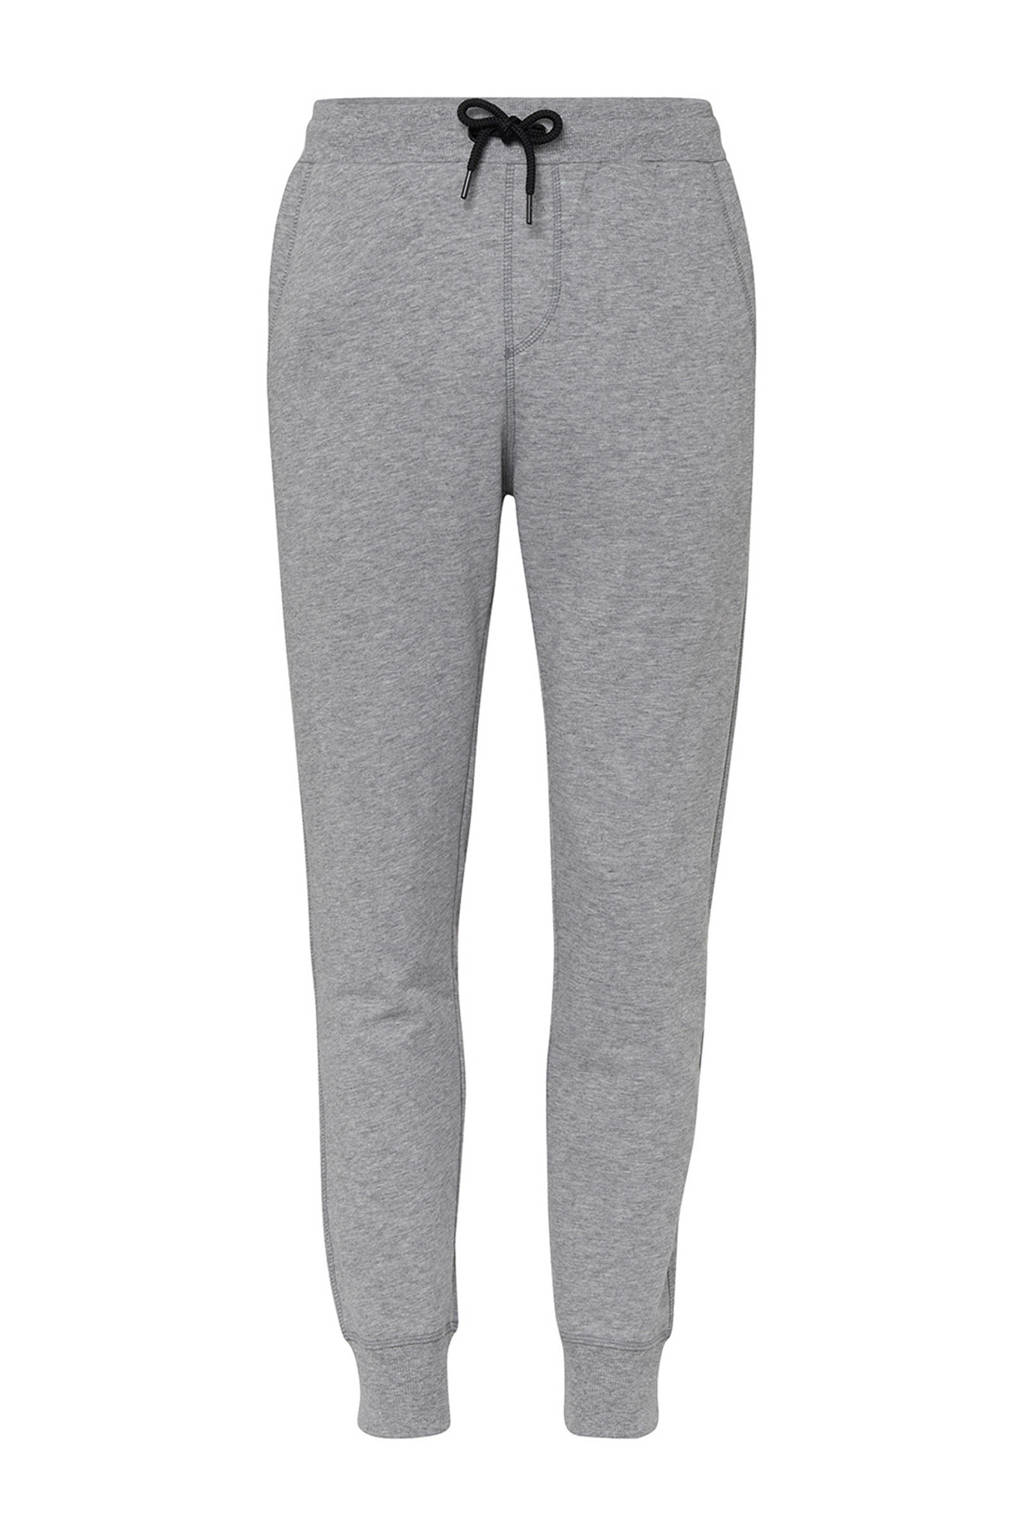 O'Neill regular fit joggingbroek light grey, Light Grey